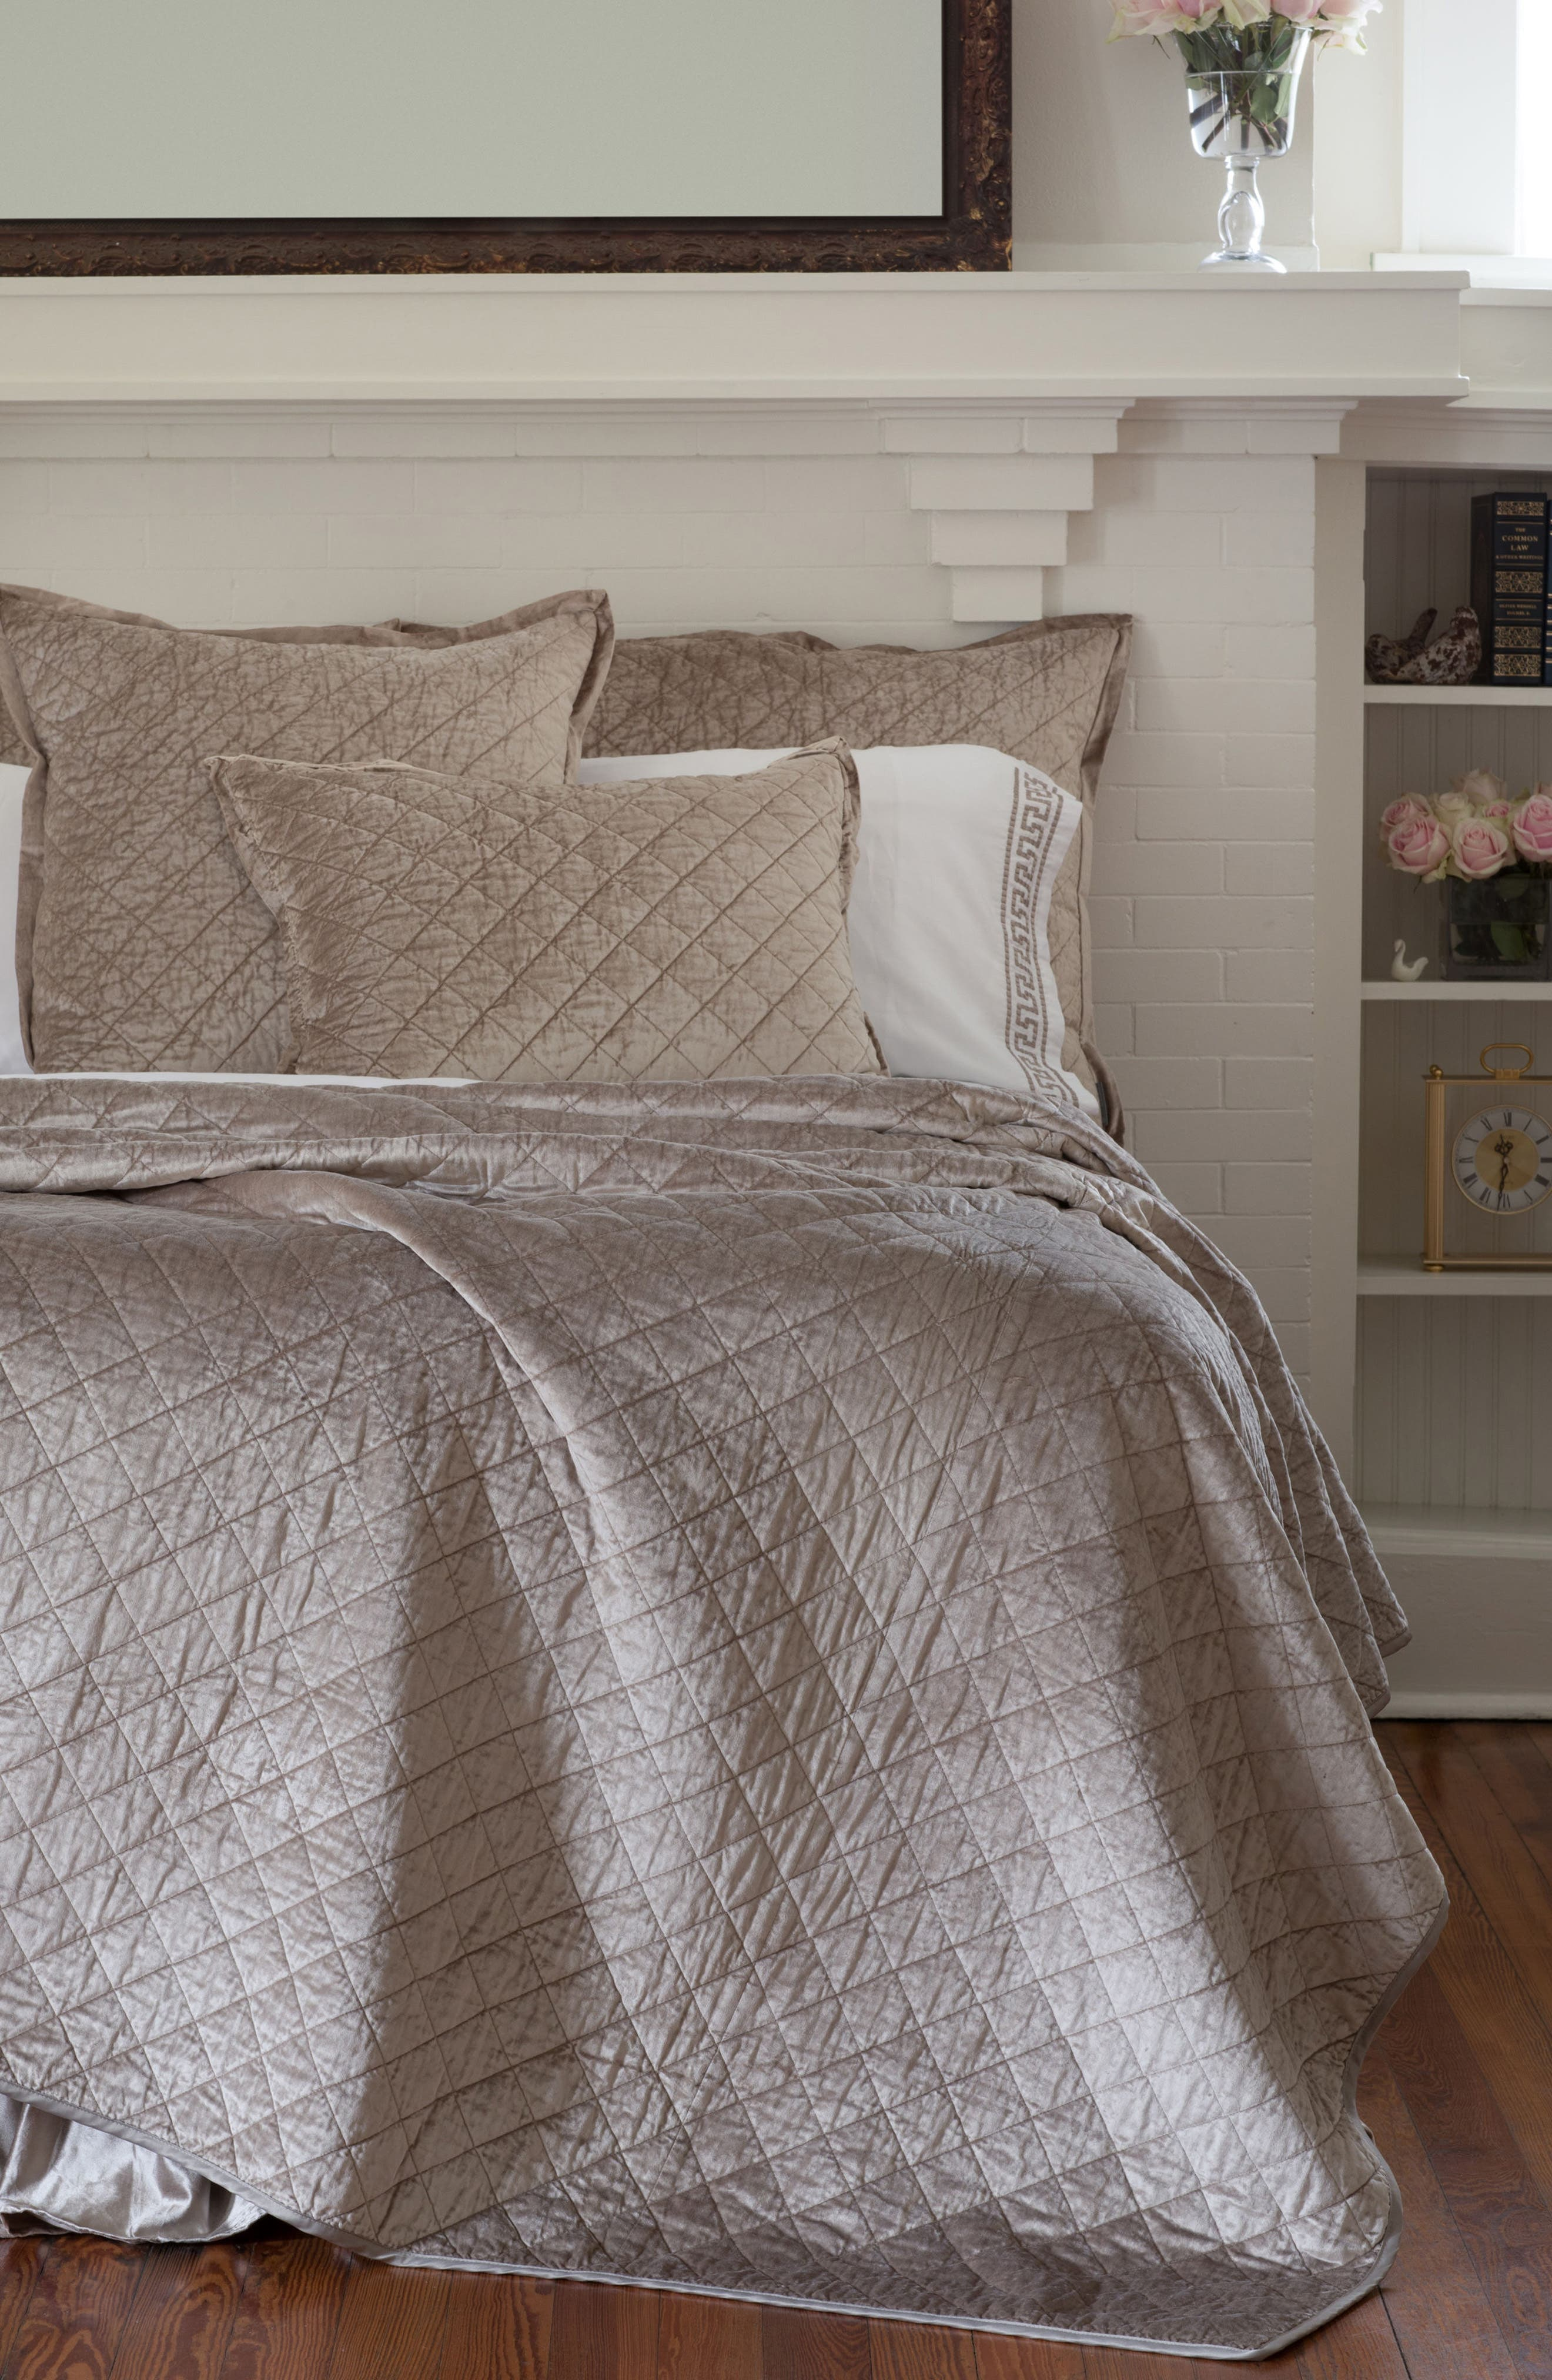 dining robshaw bed of expensive john sets tags bedding trellis fresh room marble